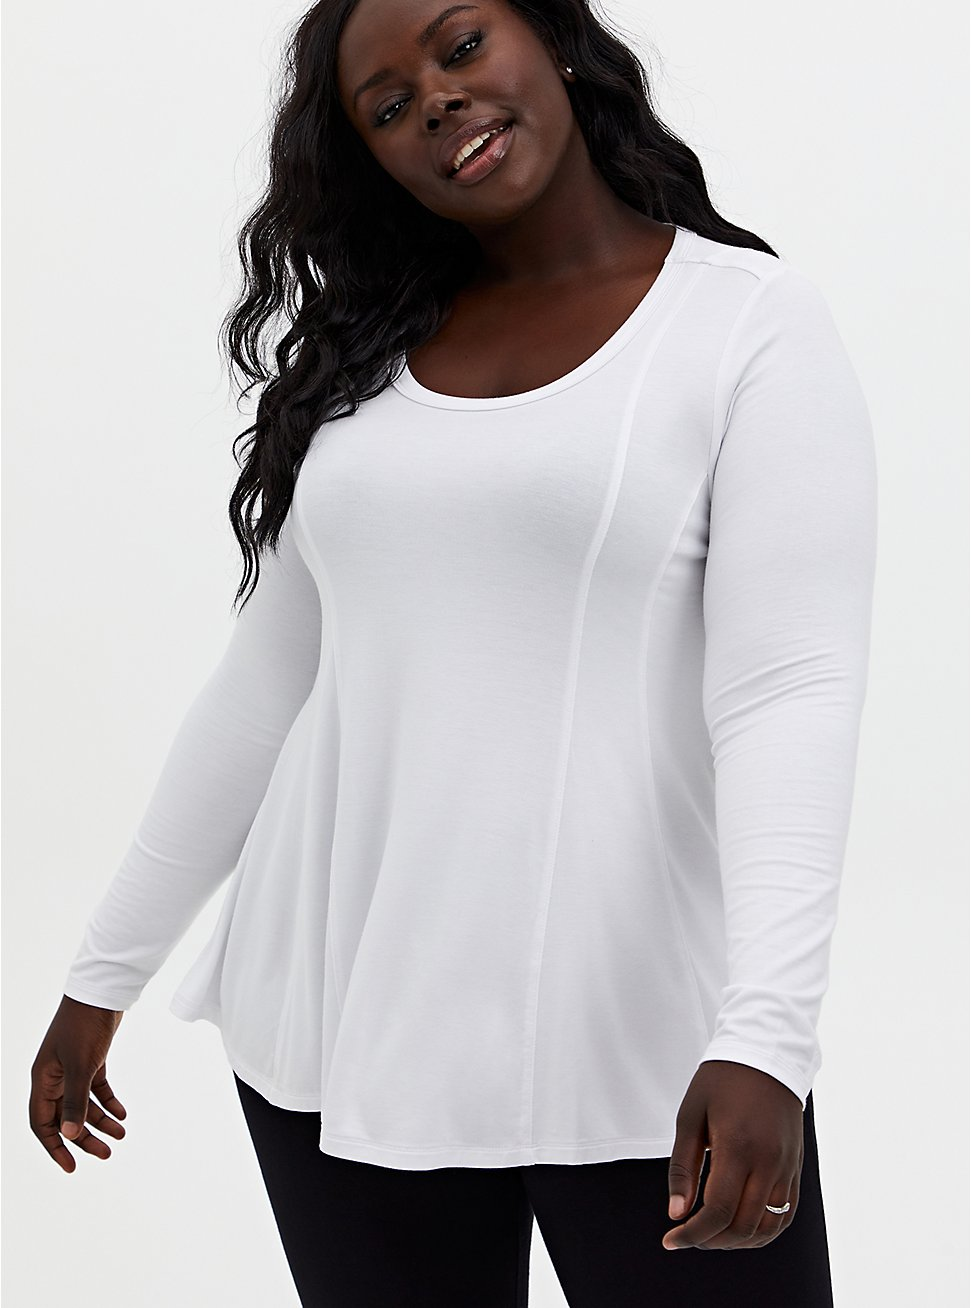 Super Soft White Long Sleeve Fit & Flare Top, , hi-res